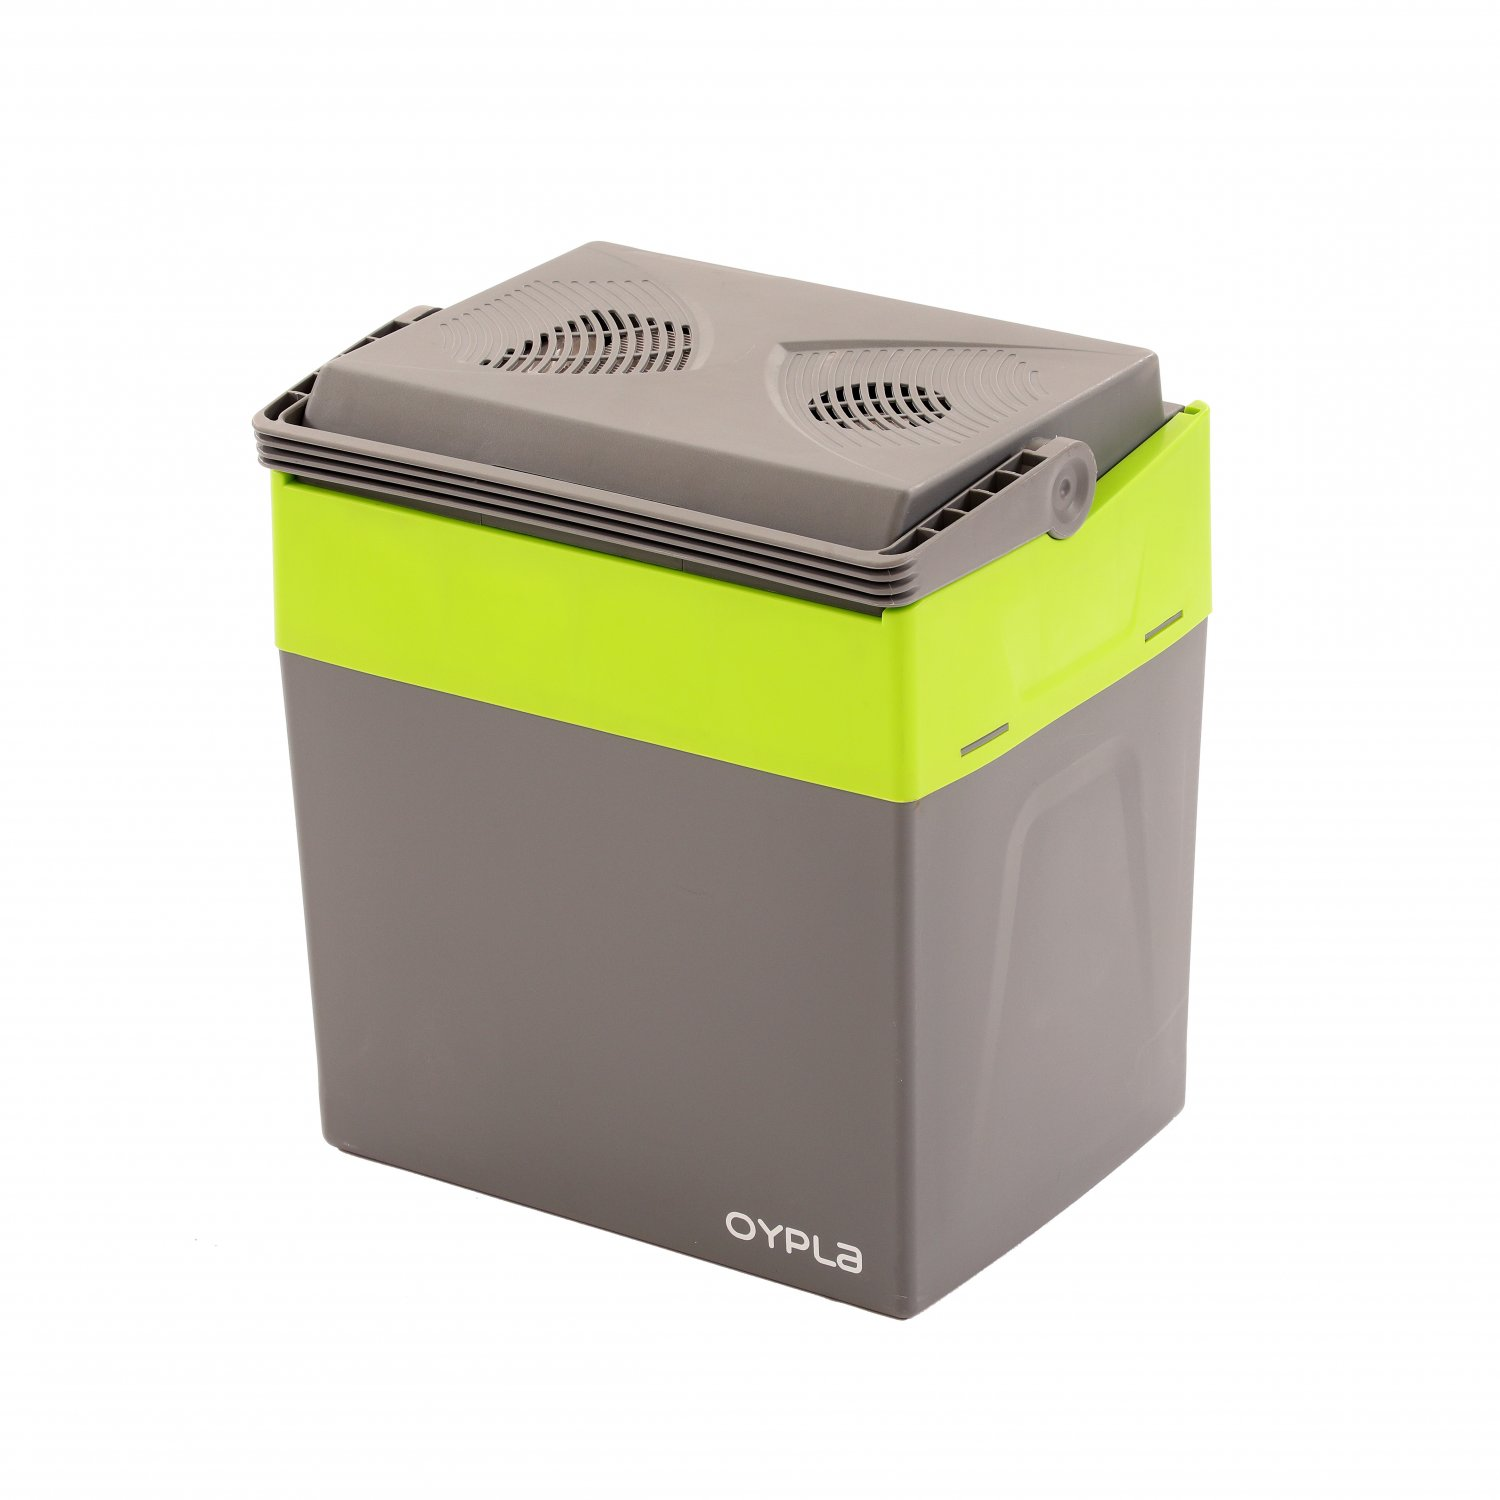 30L 240V AC & 12V DC Coolbox Hot Cold Portable Electric Cool Box